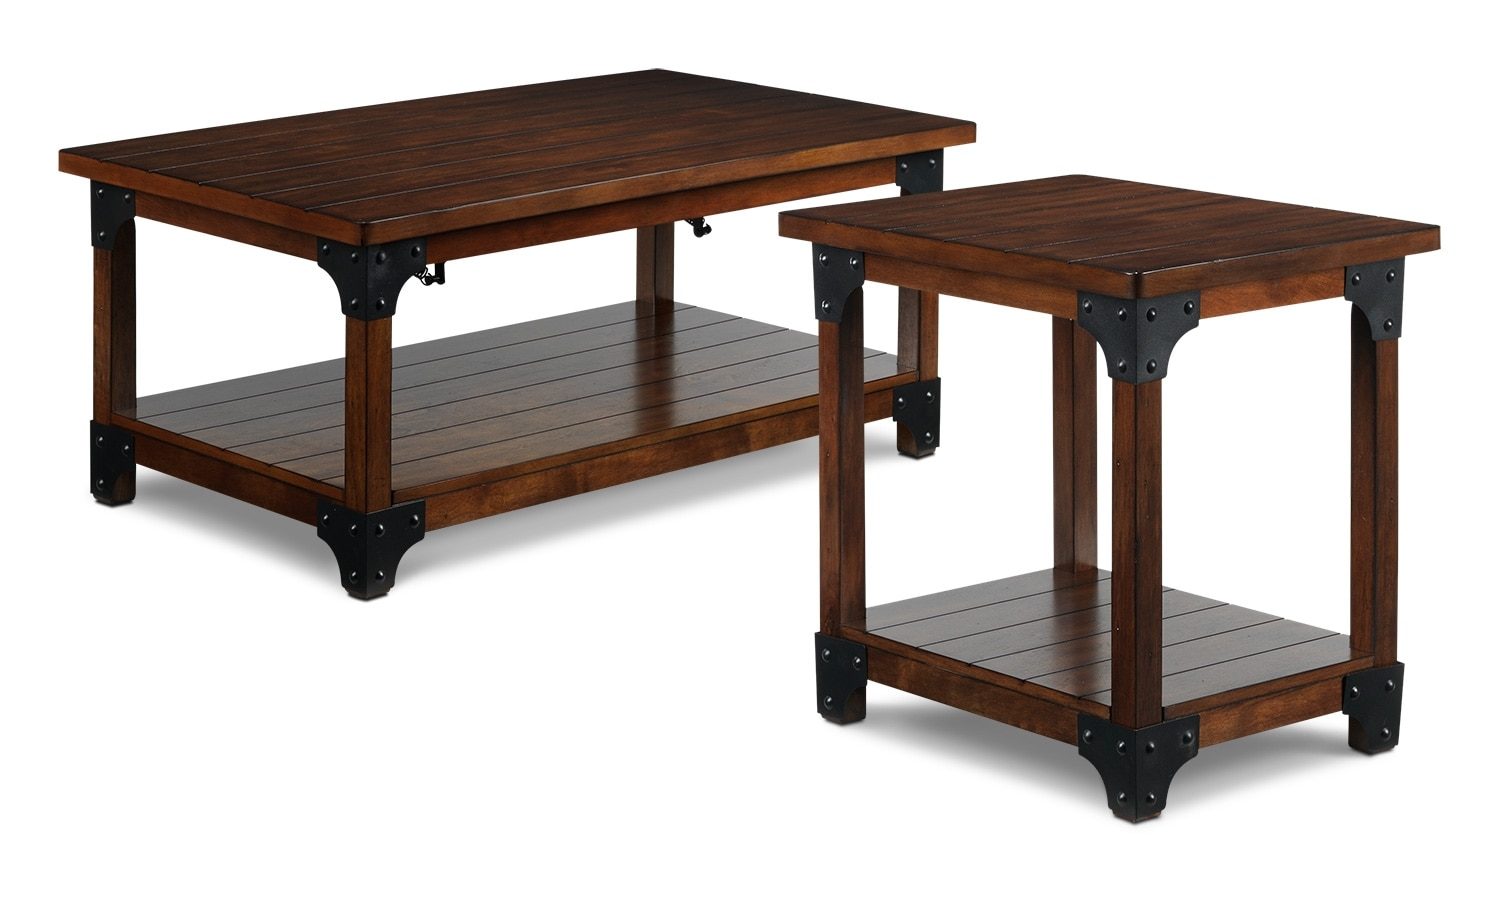 Wellington Coffee Table and End Table - Walnut